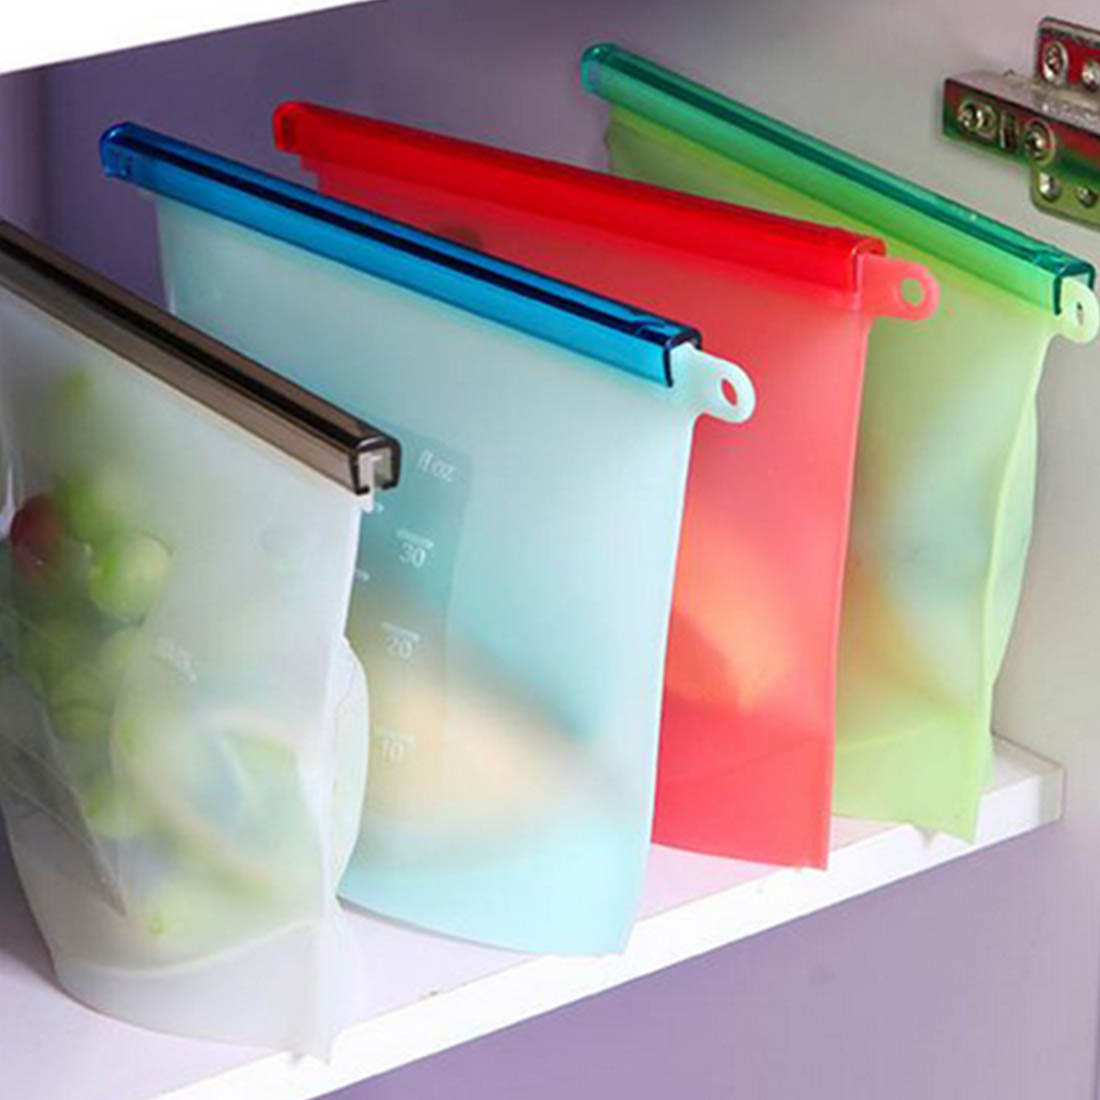 2016 NEW Reusable Vacuum Food Sealer Bags Silicone Food Storage Container Refrigerator Bag Kitchen Colored Ziplock Bags(China (Mainland))